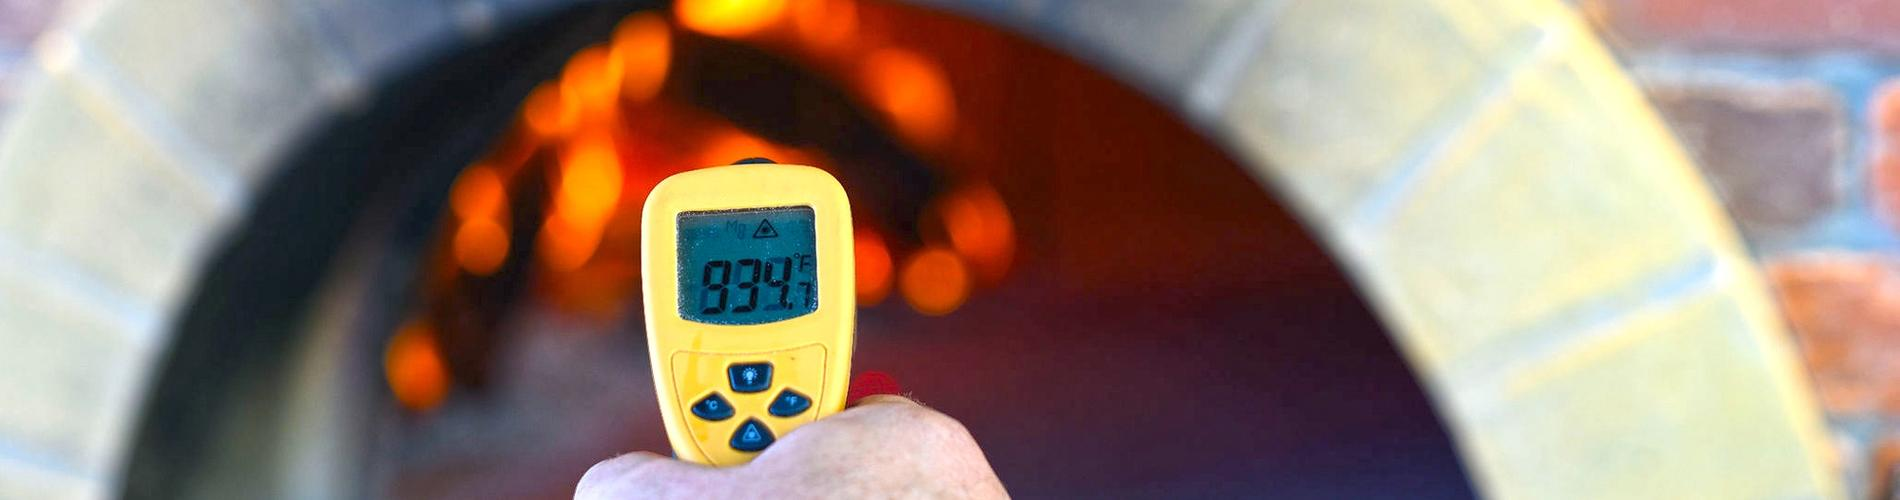 Wood Fired Pizza Oven Temperature Measured with a Temp gun